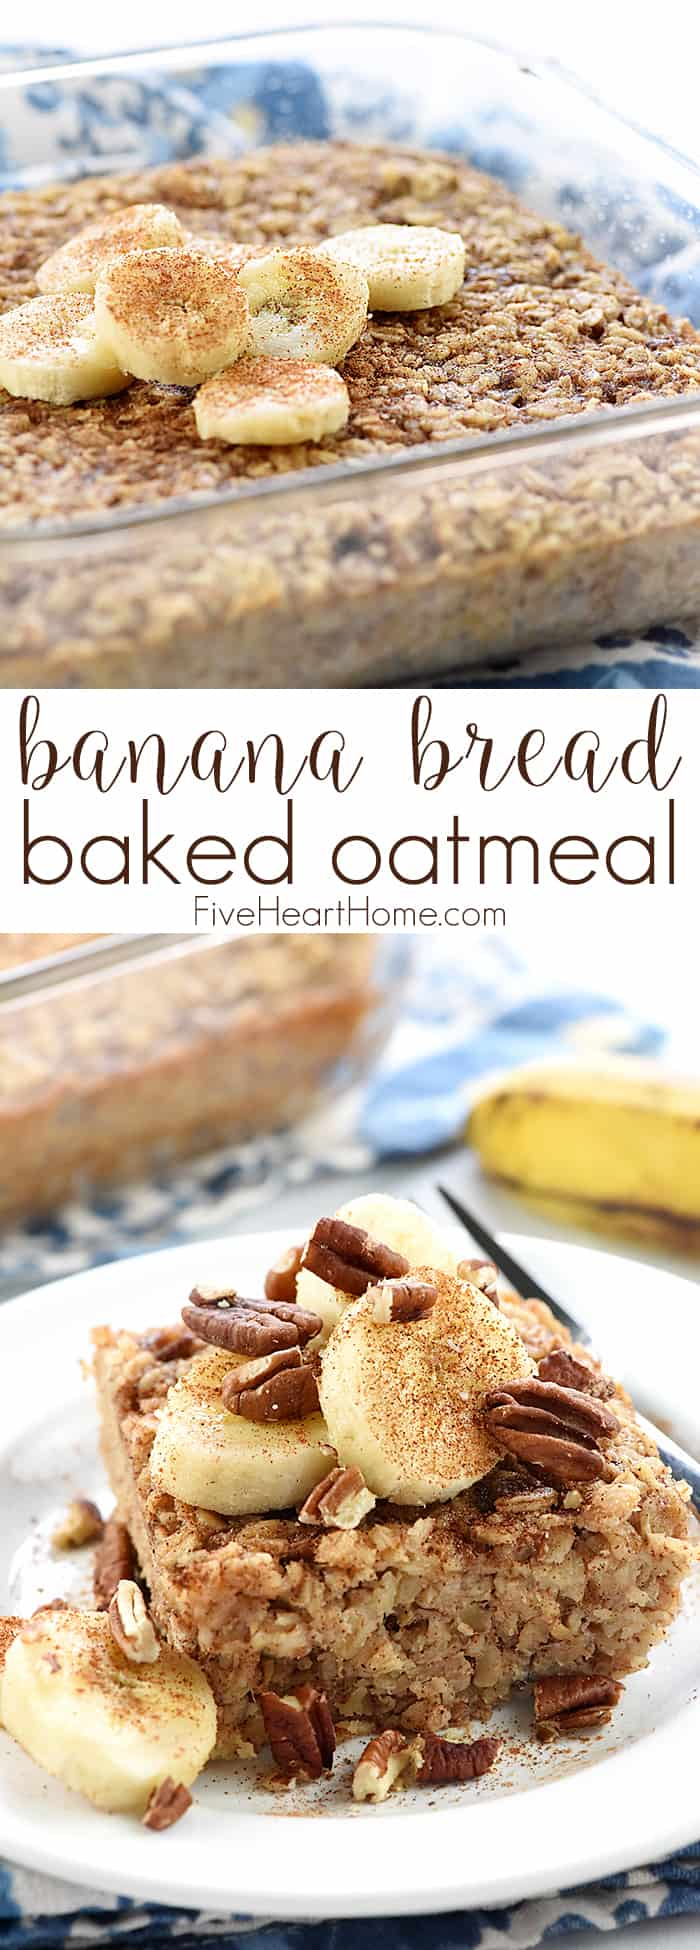 Banana Baked Oatmeal ~ boasts the delicious flavor of banana bread, but it's made with wholesome oats, pecans, and coconut oil for a healthy, filling breakfast or brunch recipe! | FiveHeartHome.com via @fivehearthome